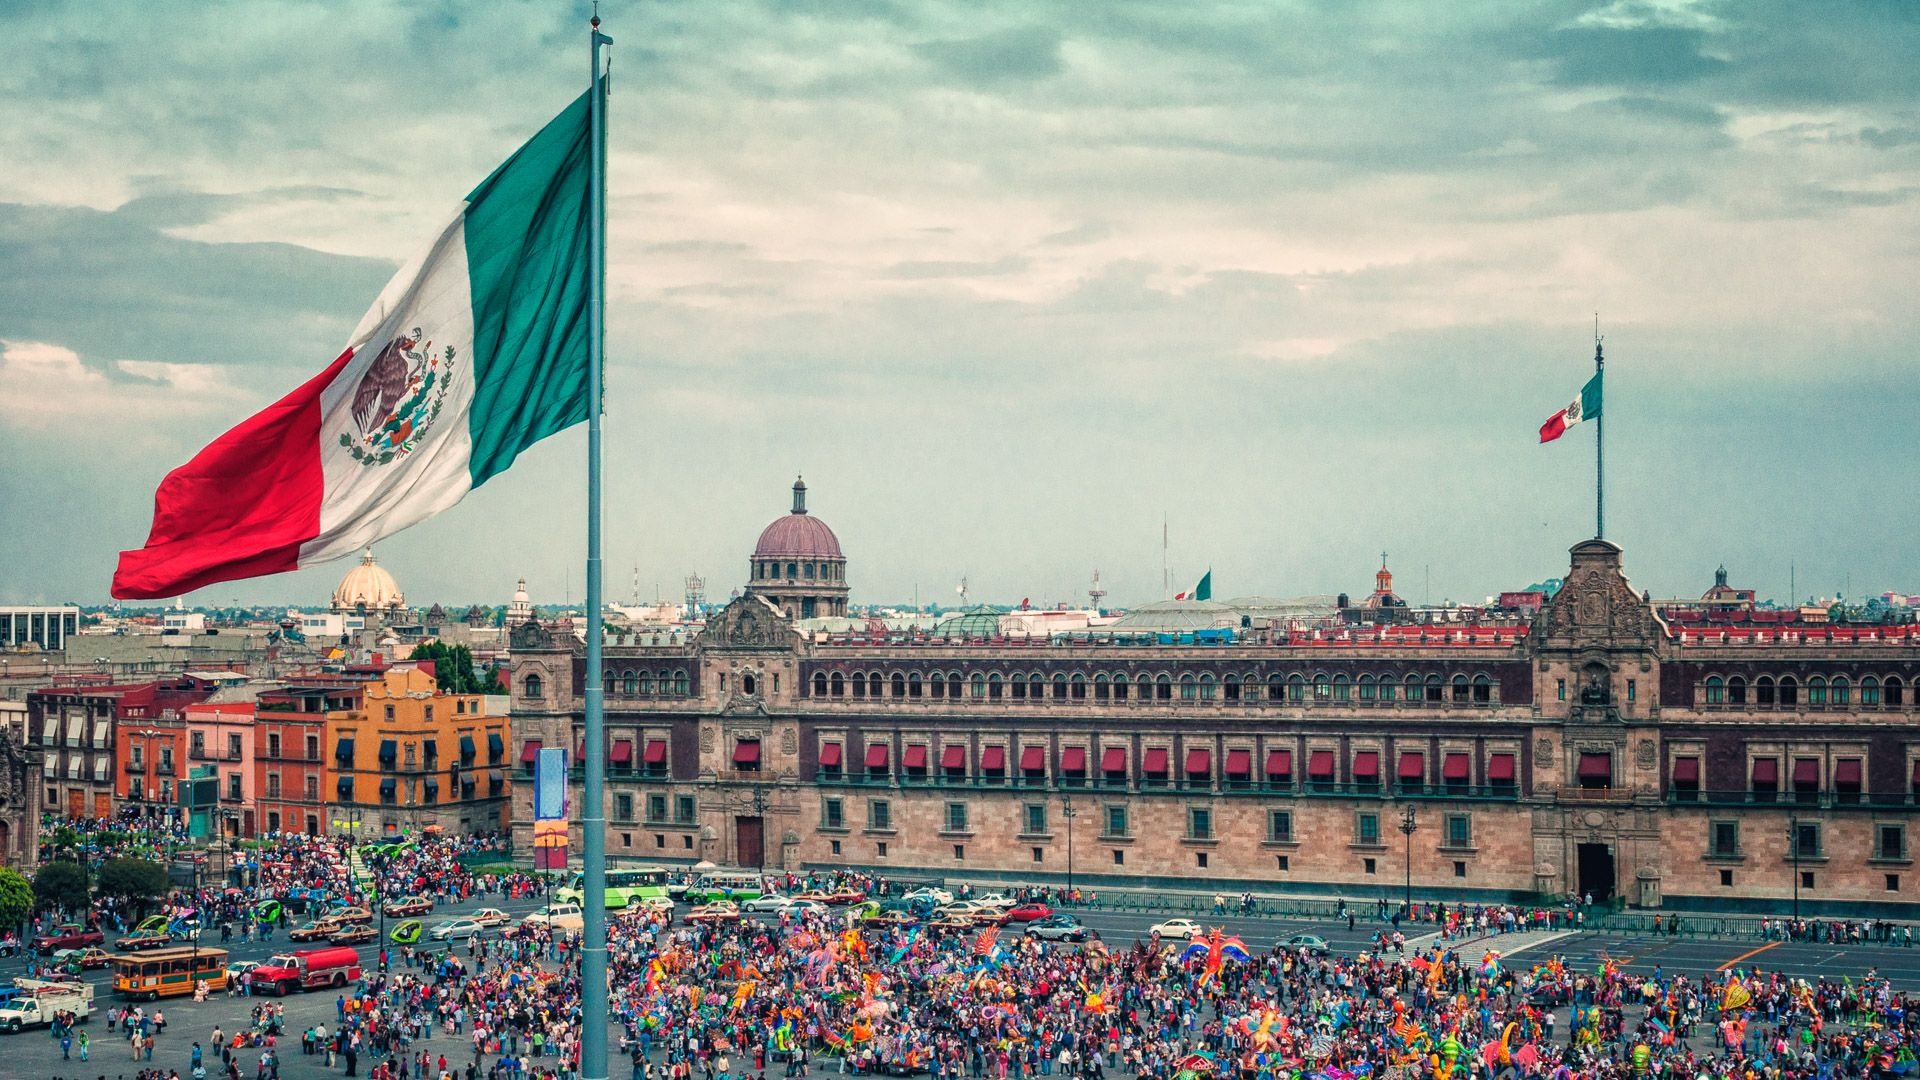 Principal Square with Flag in Mexico City.